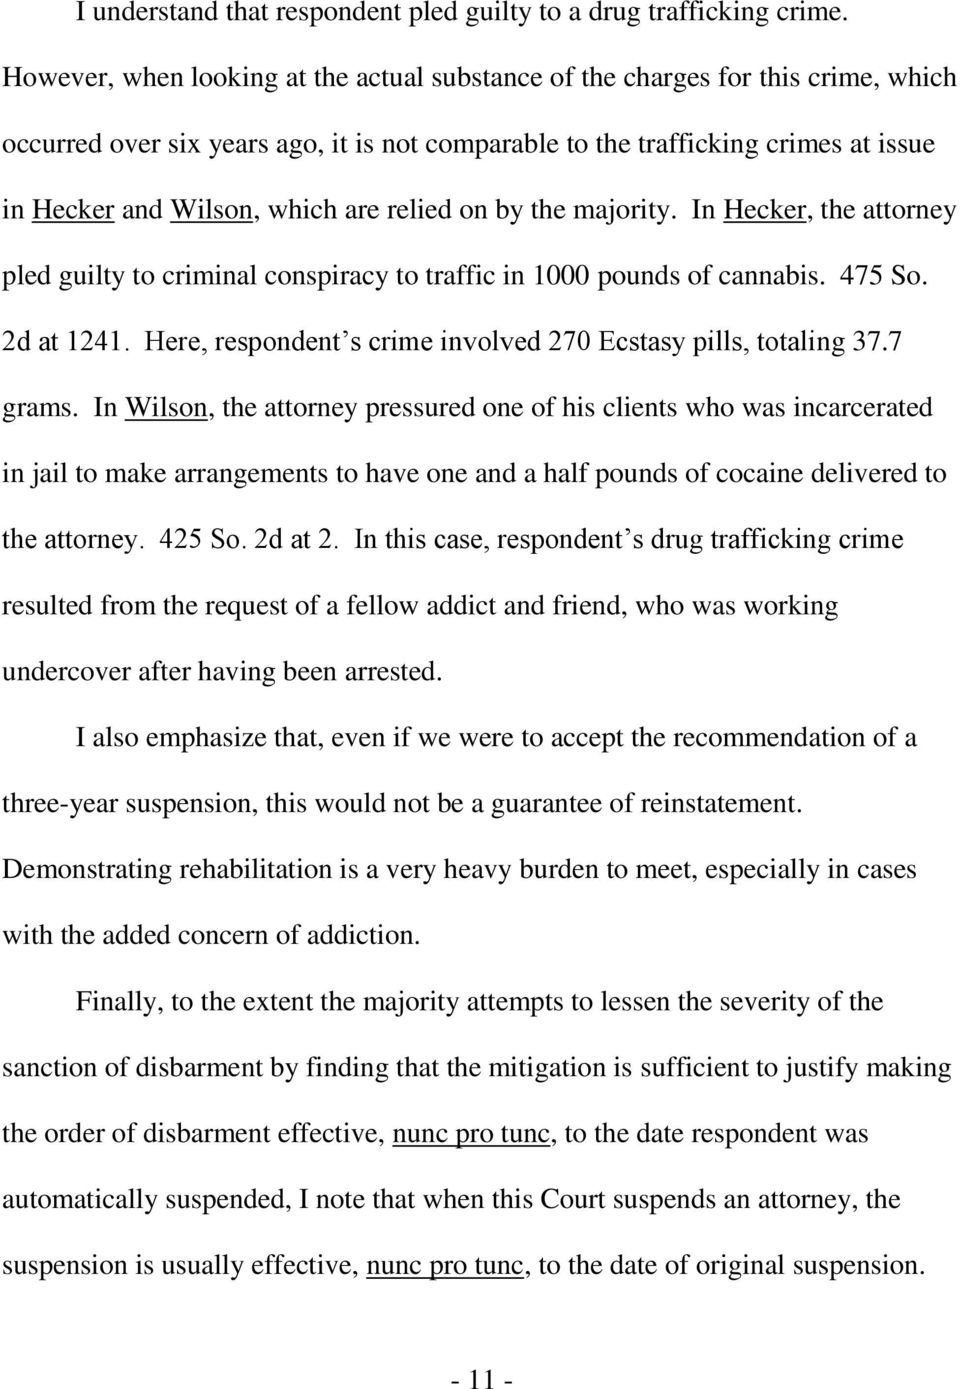 relied on by the majority. In Hecker, the attorney pled guilty to criminal conspiracy to traffic in 1000 pounds of cannabis. 475 So. 2d at 1241.